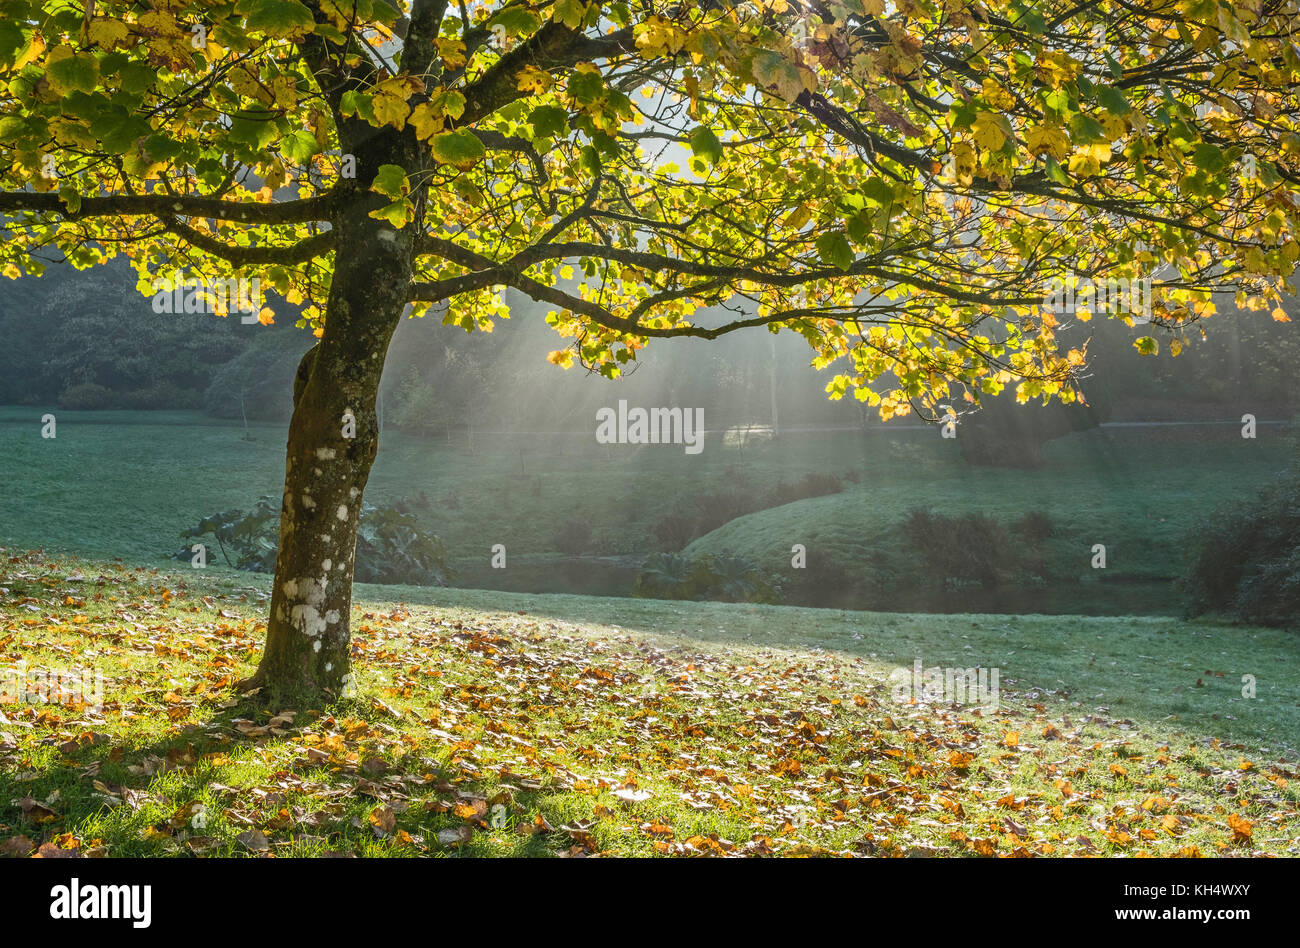 A Beech tree with backlighting showing the autumn colours in the leaves with sun rays in the background landscape, - Stock Image